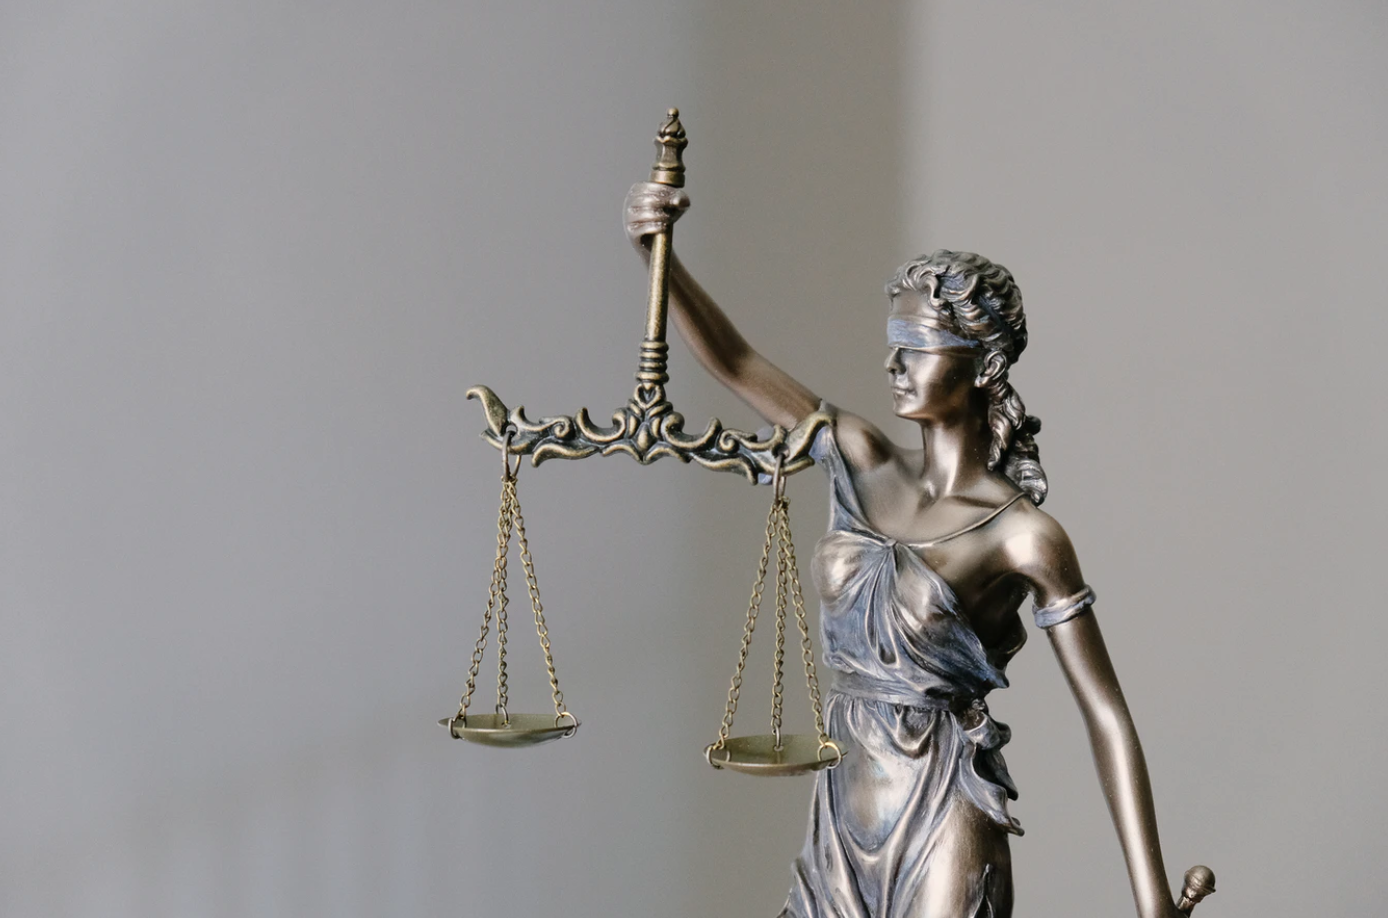 Lady Justice; image by Tingey Injury Law Firm, via Unsplash.com.